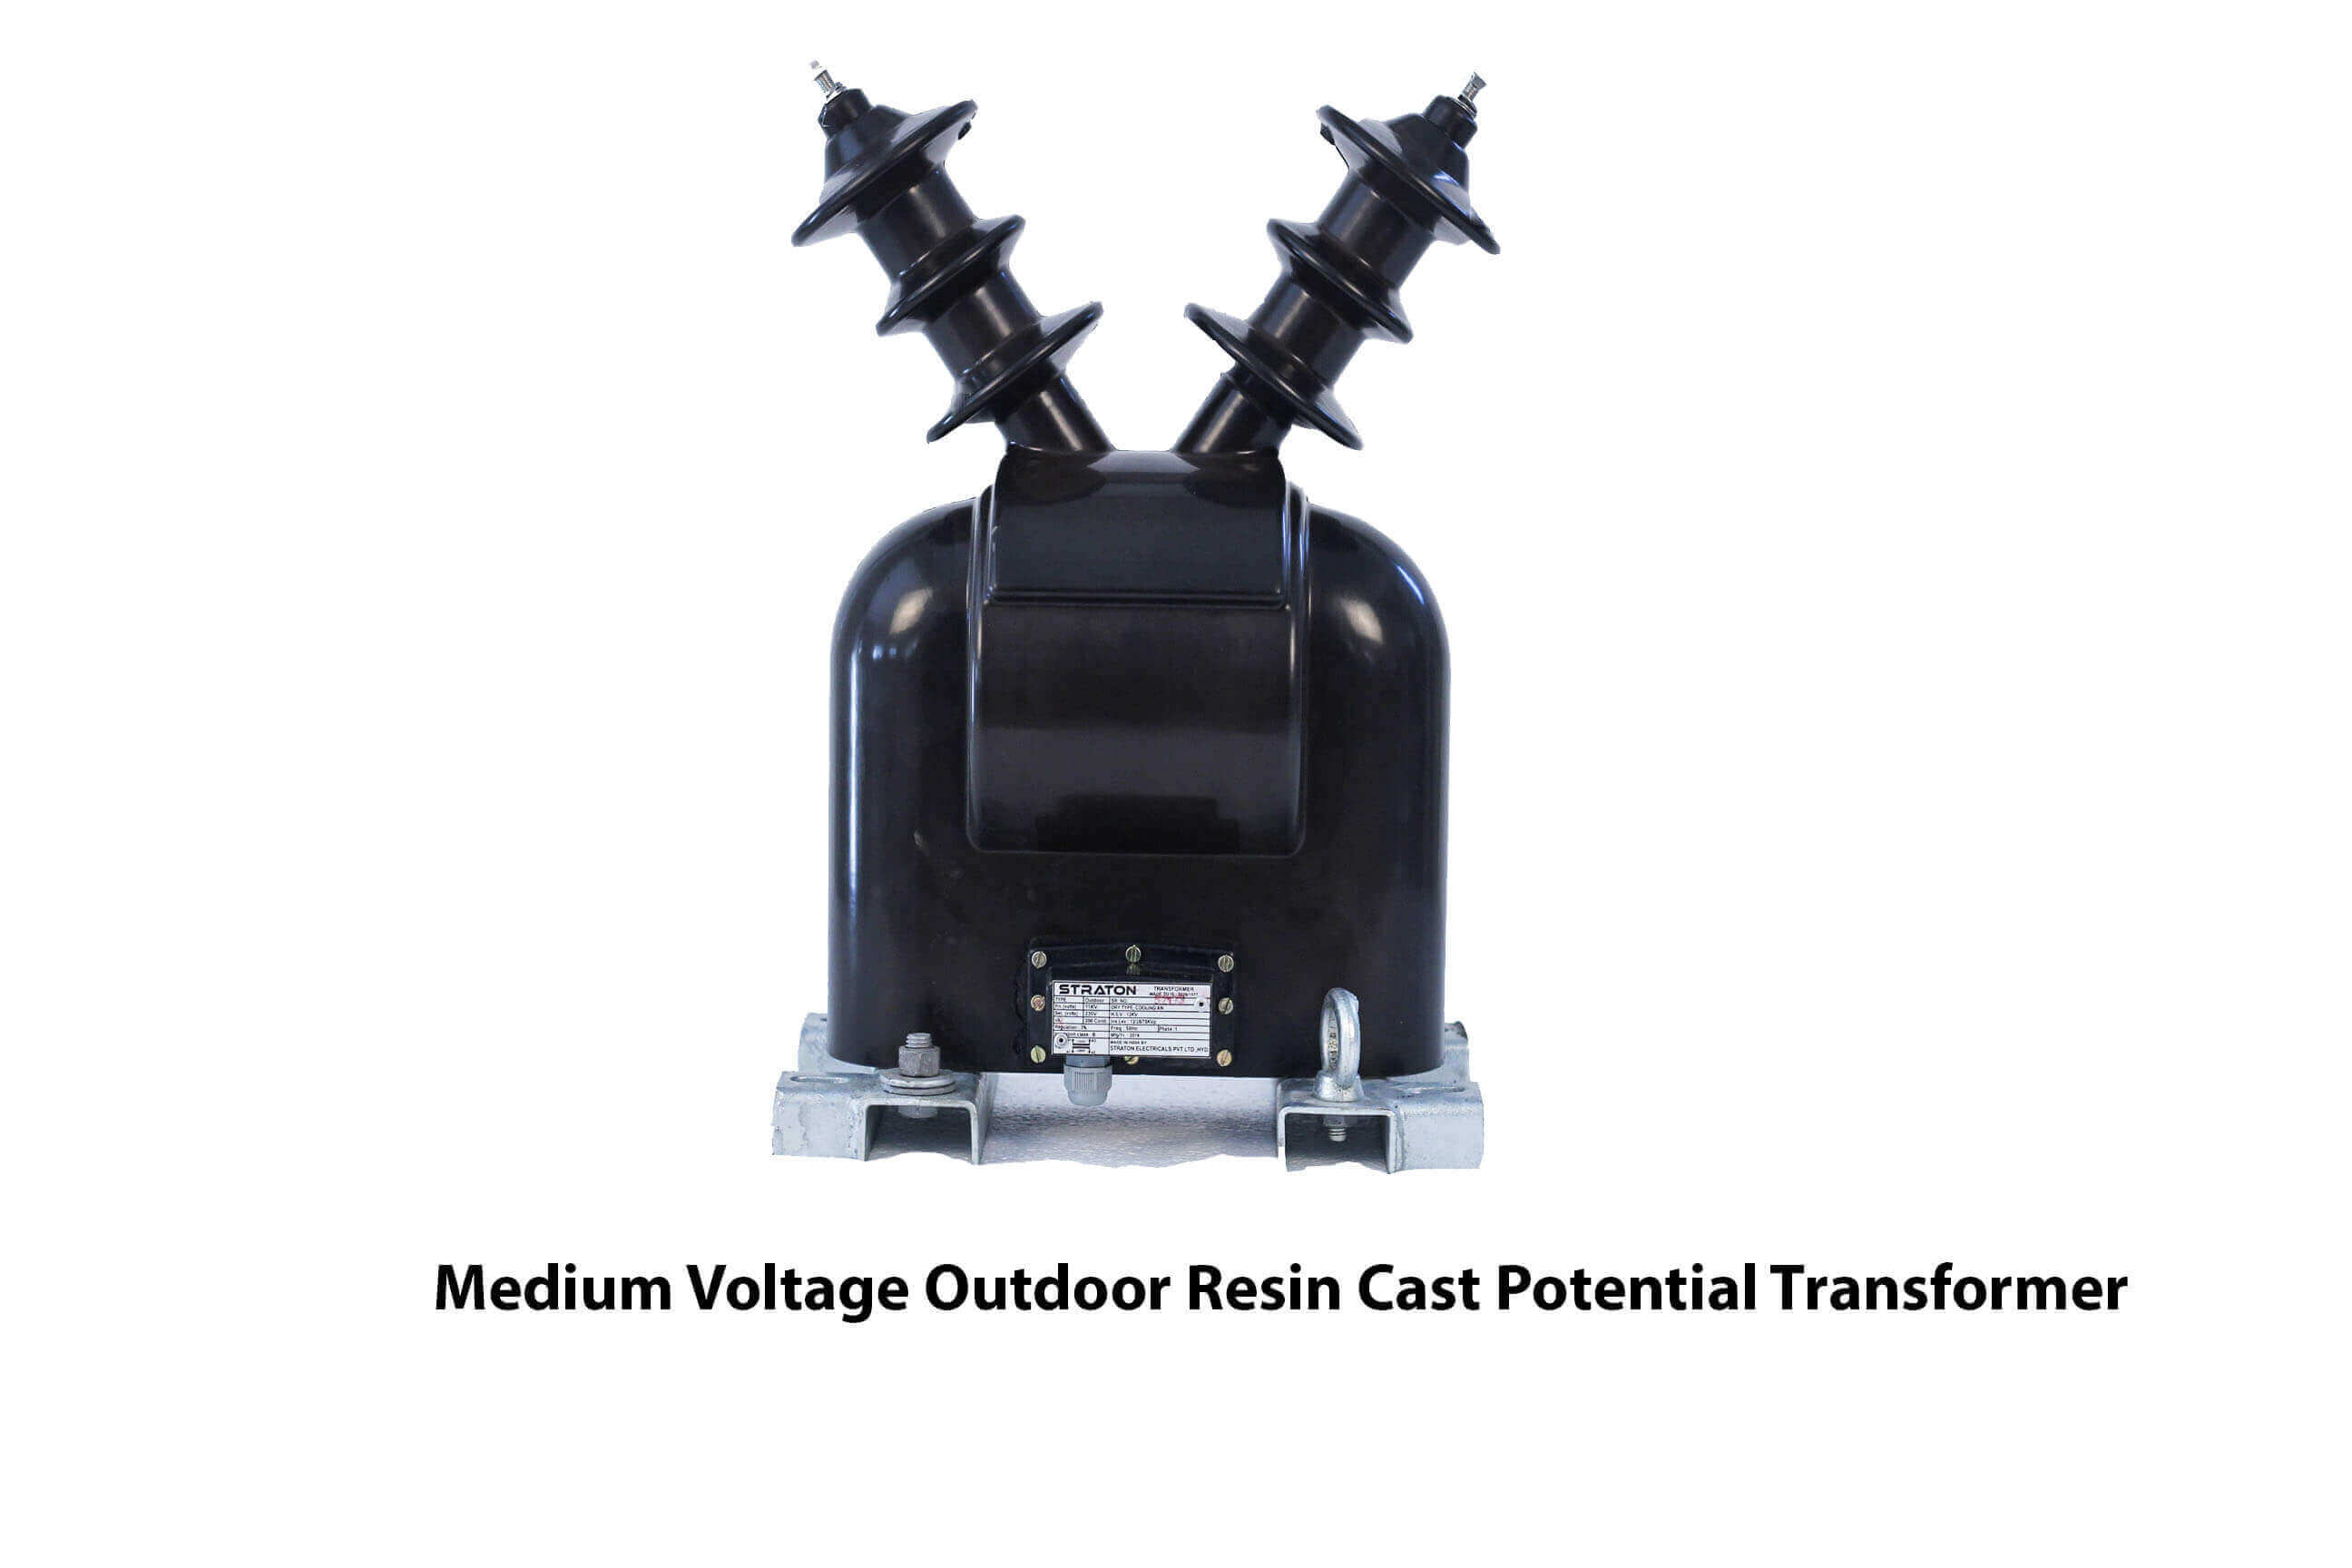 Medium Voltage Outdoor Resin Cast Potential Transformer